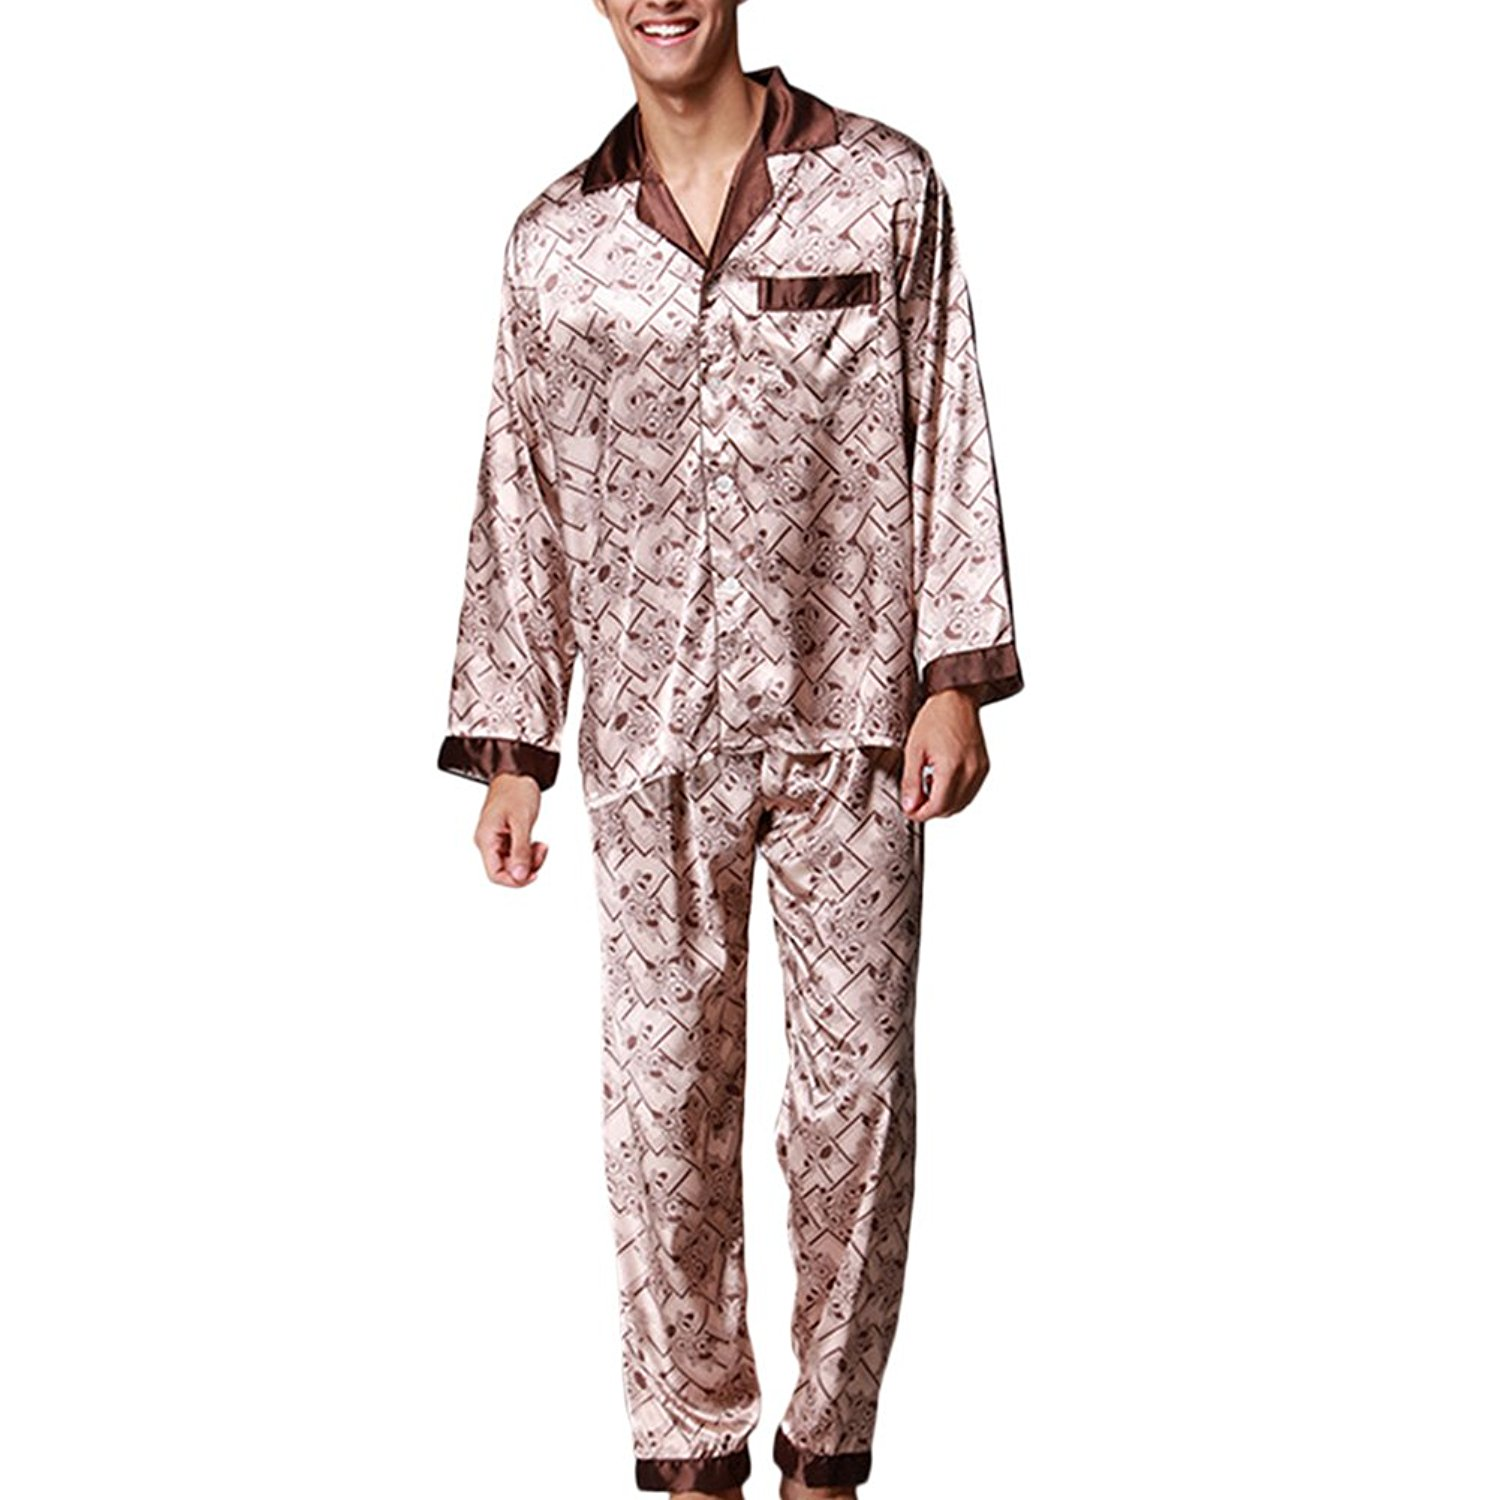 d3a2ed376f Get Quotations · Zhuhaitf Mens Long Sleeve Silk Pyjama Set Suit Classic  Nightwear Home Clothing